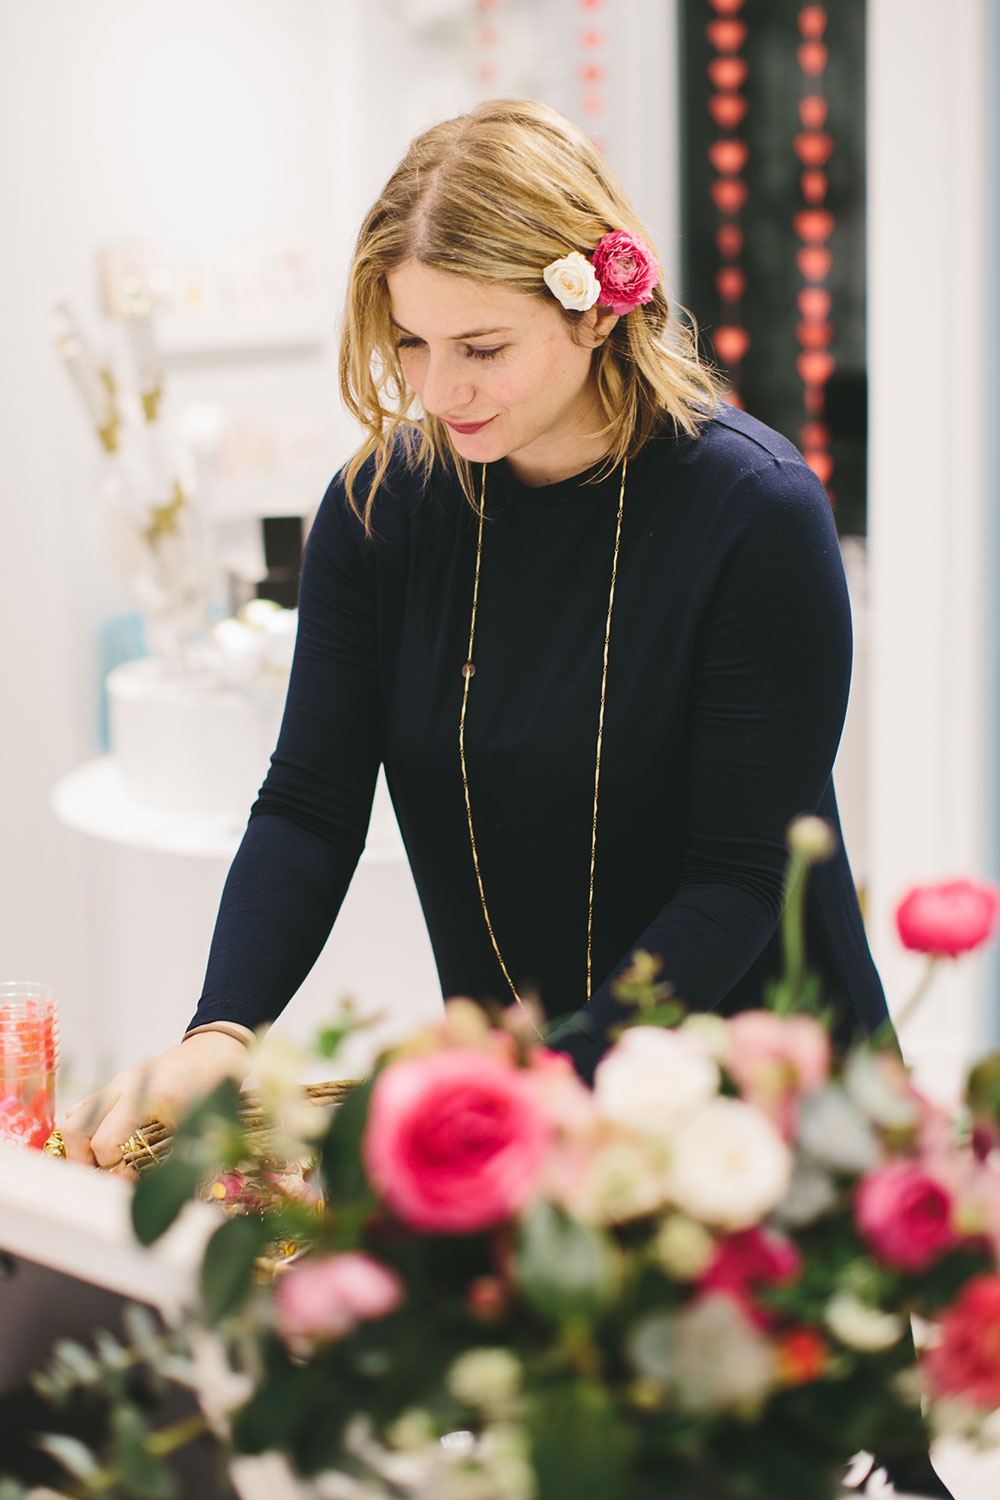 valentine's popup shoot by Boston based designer mStarr design